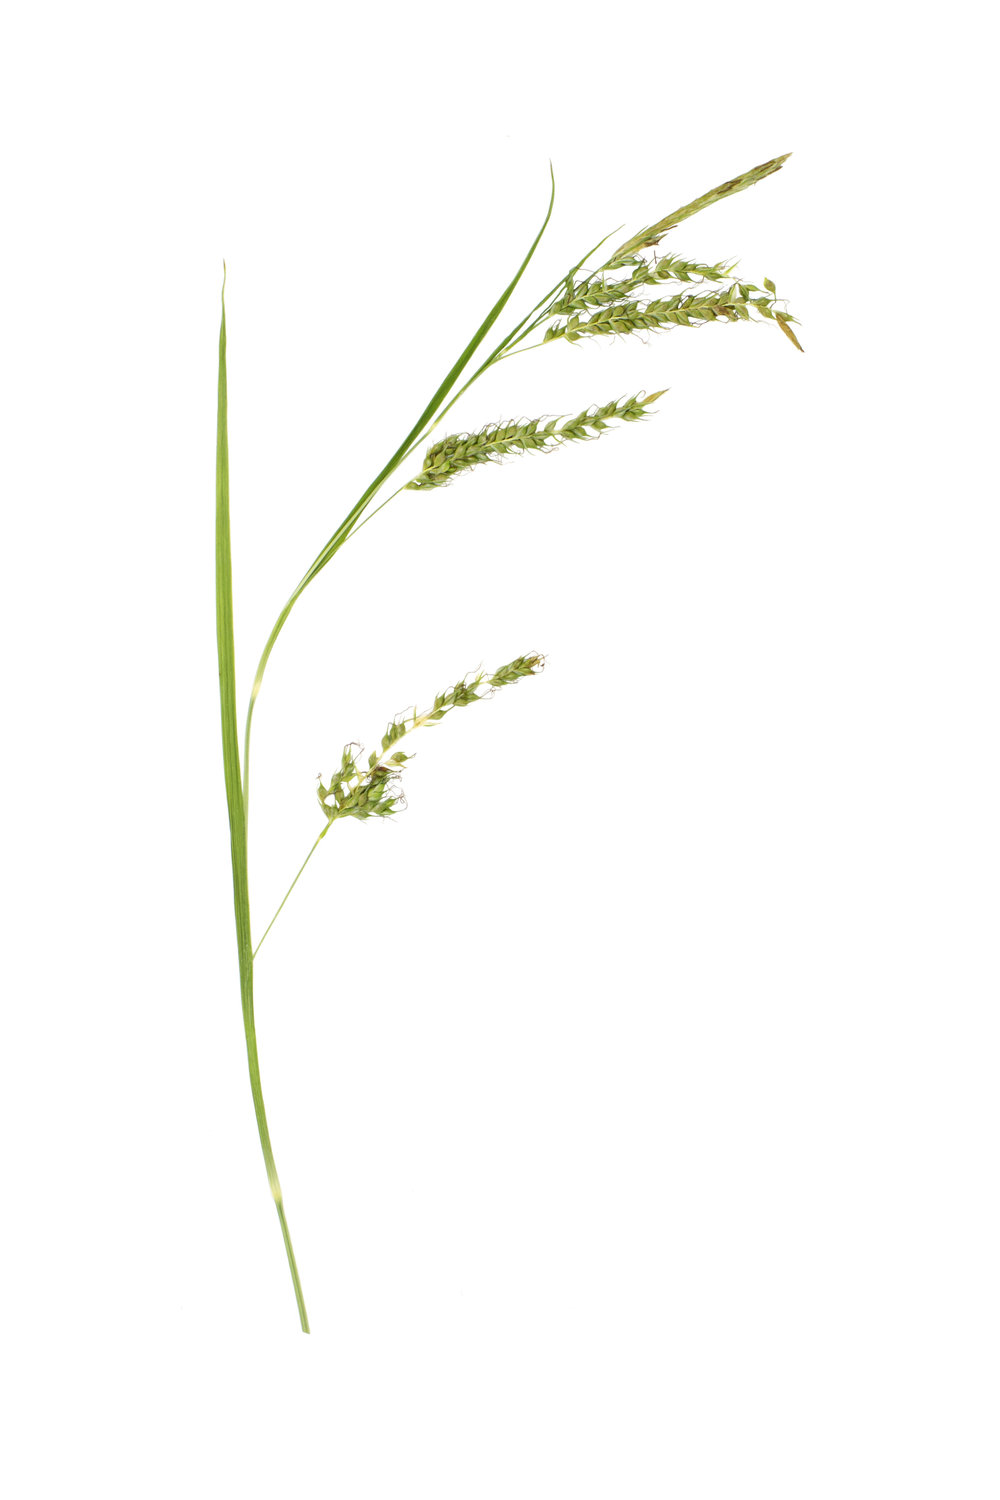 Bladder Sedge / Carex vesicaria